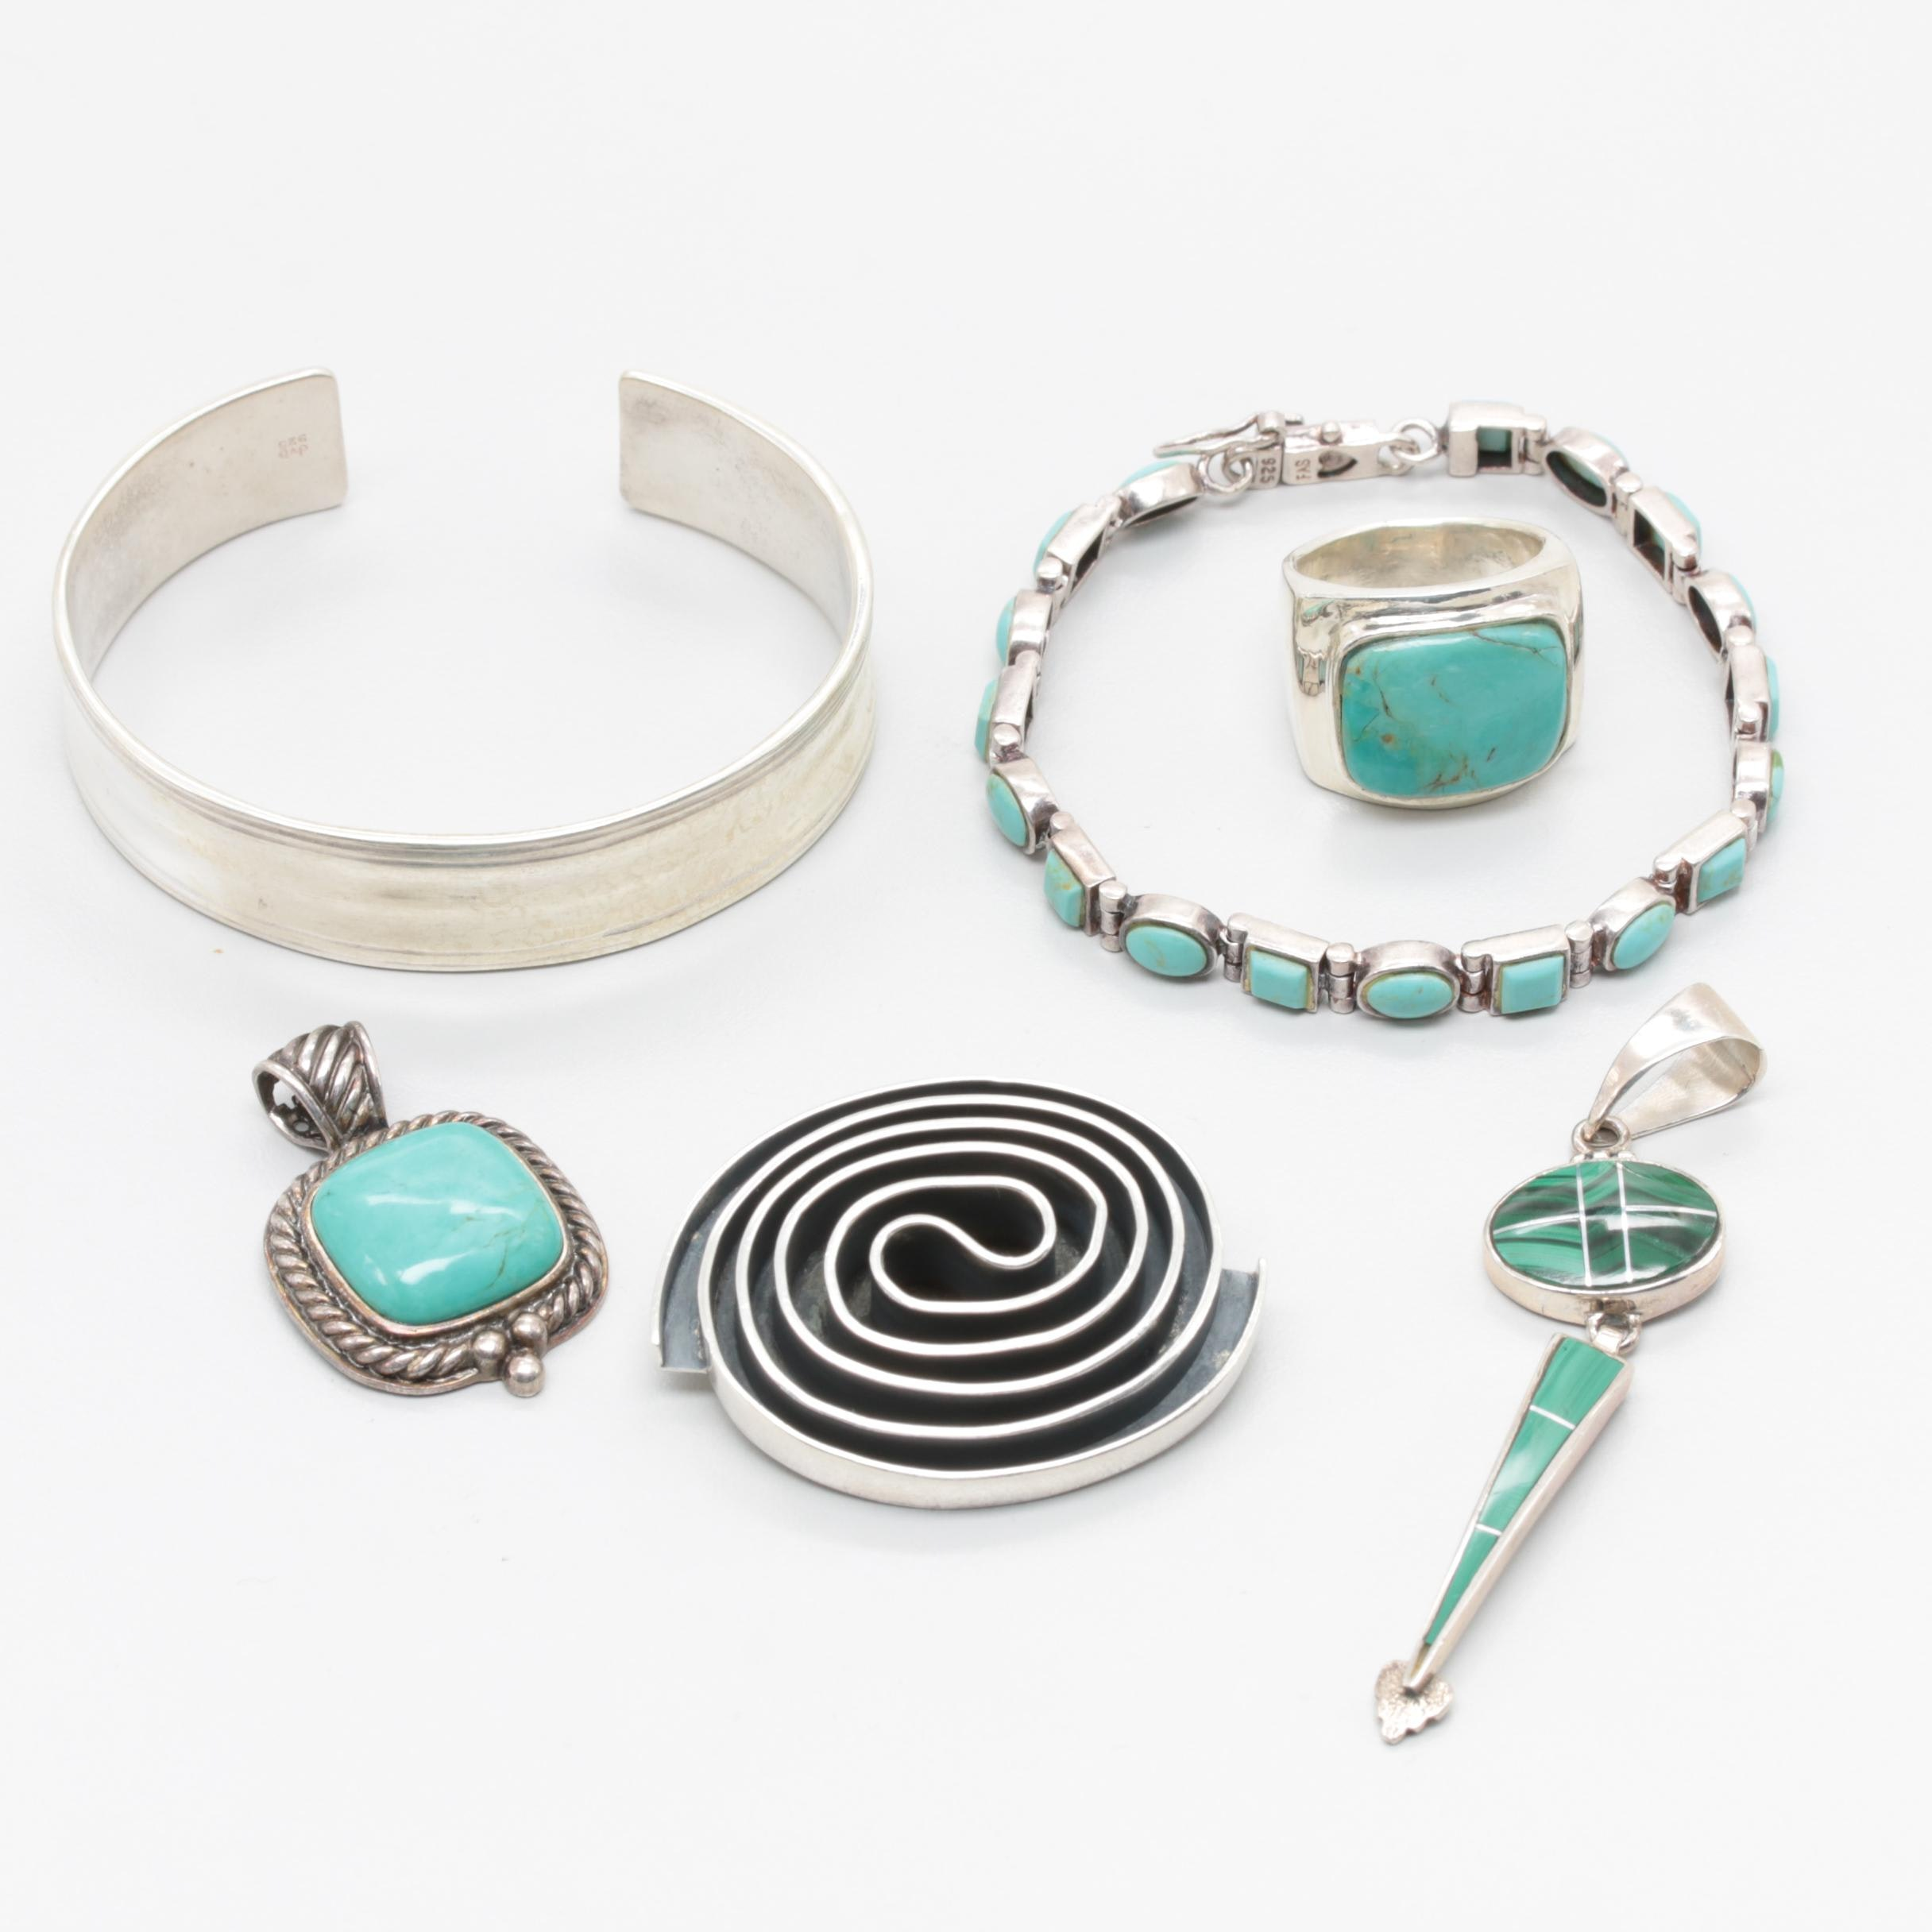 Assortment of Sterling Silver Jewelry Featuring Turquoise and Malachite